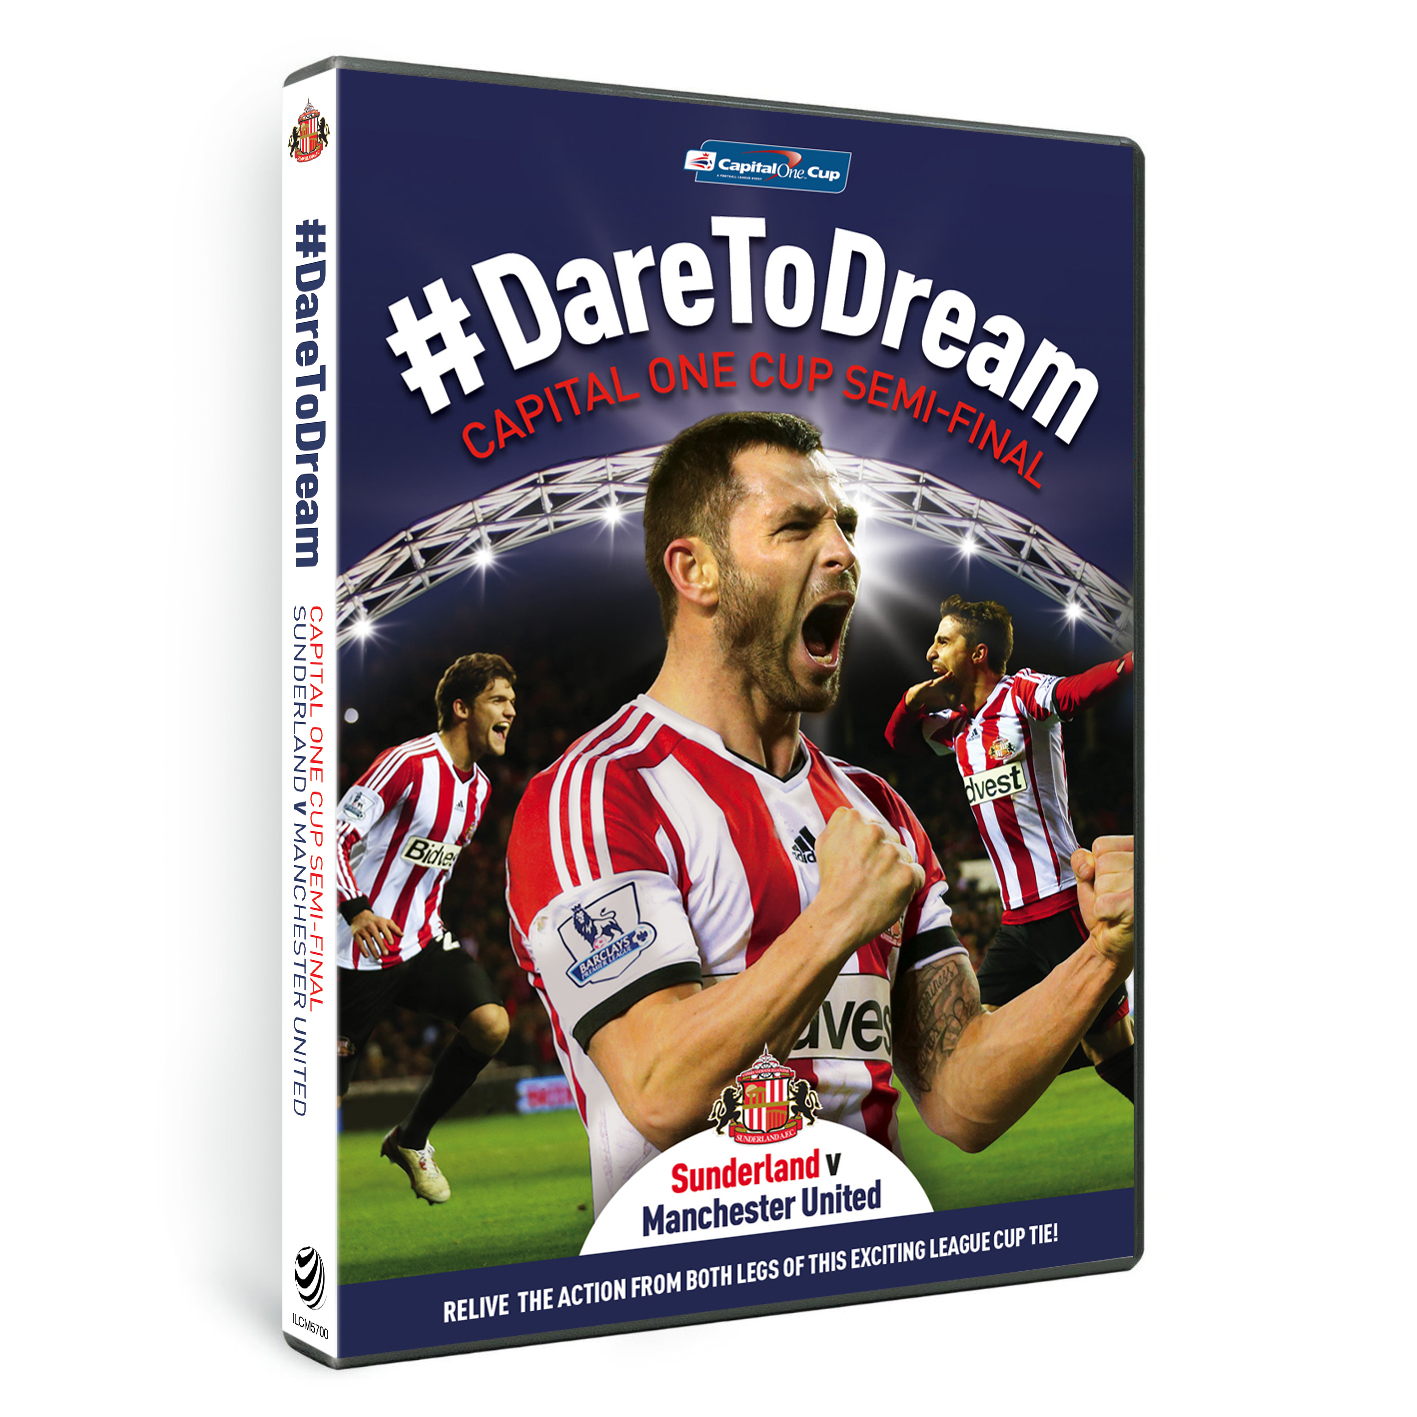 Sunderland DareToDream Capital One Cup Semi Final DVD